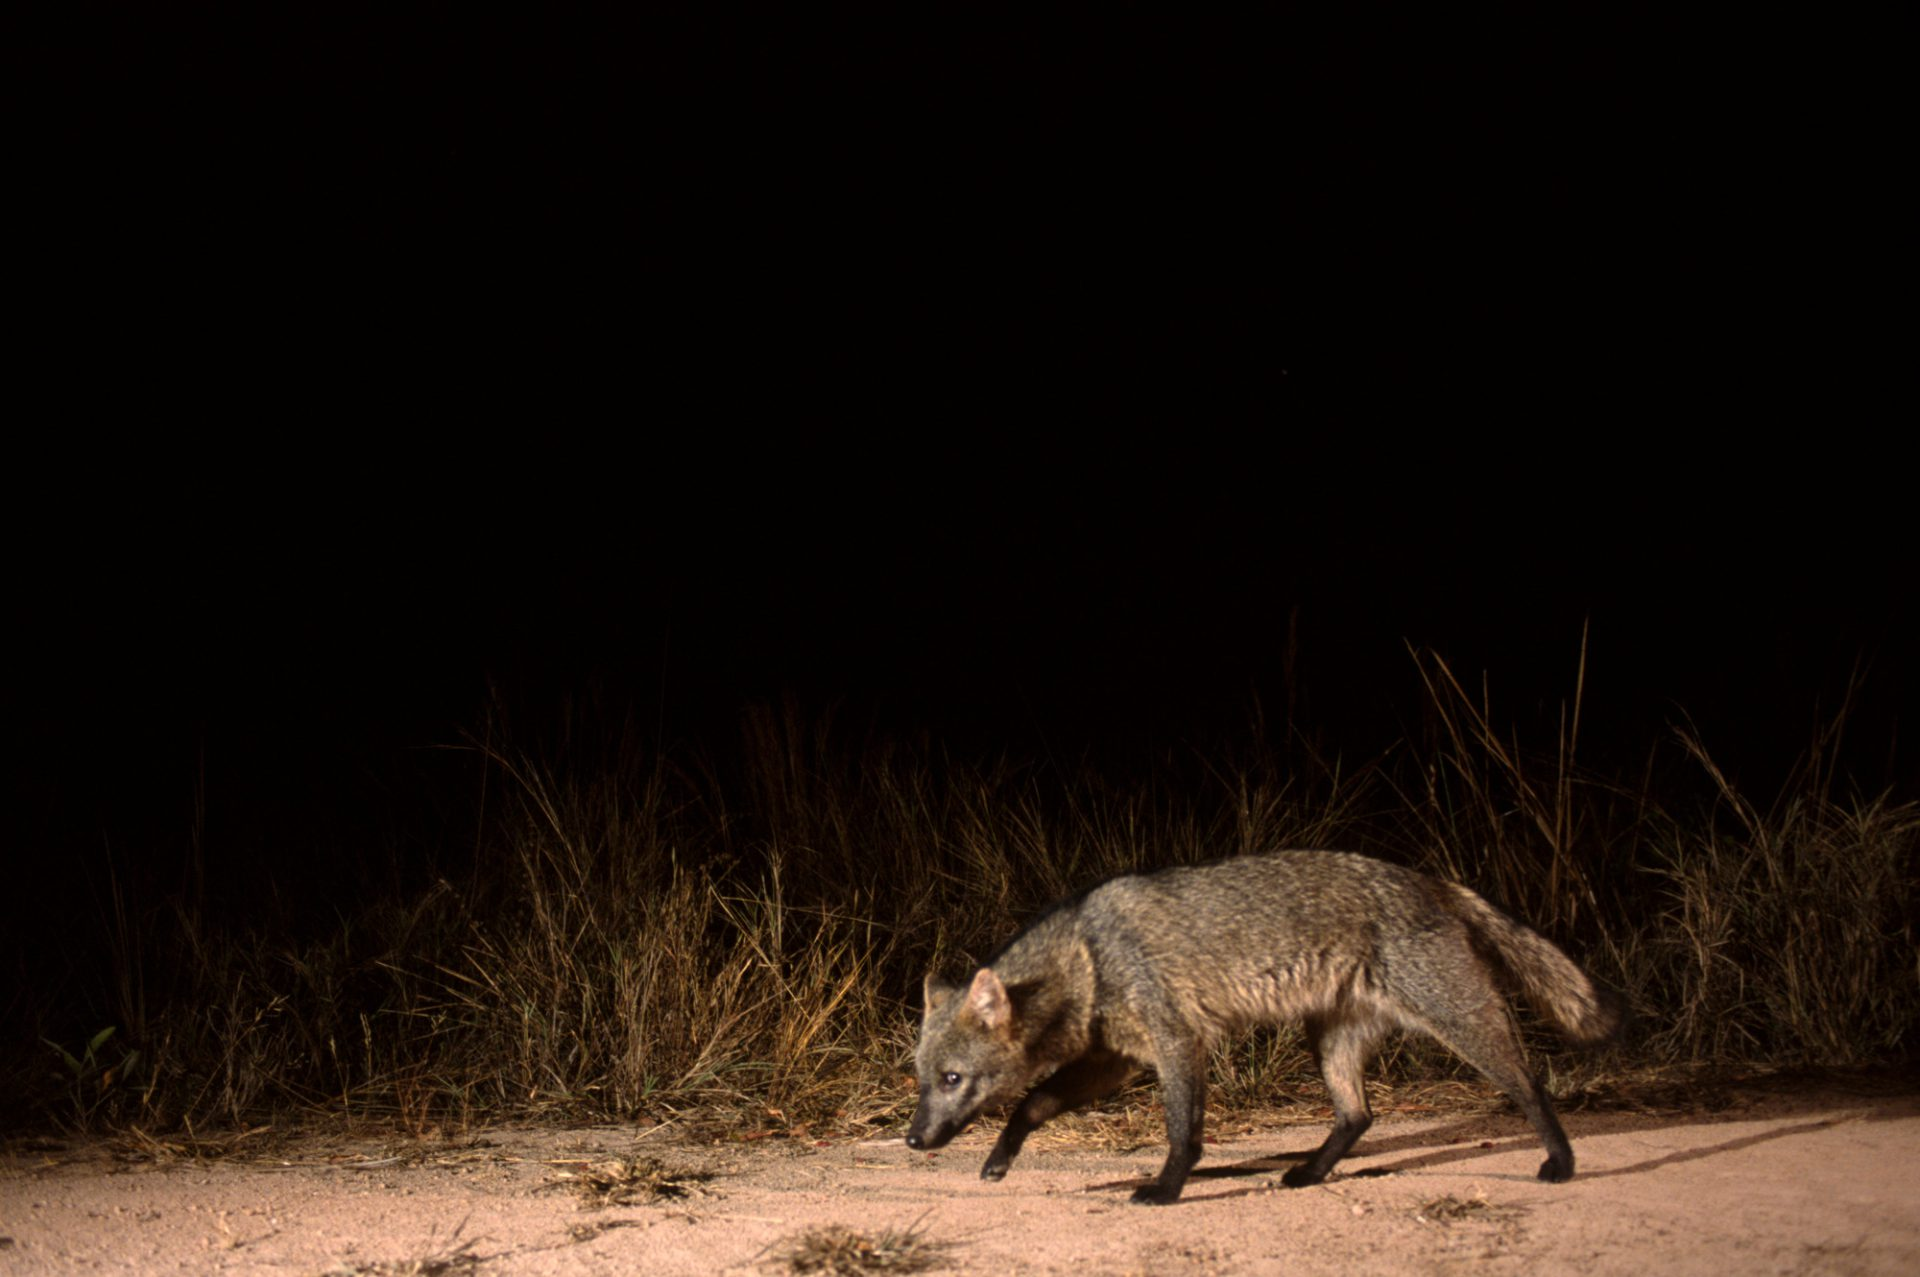 A crab-eating fox (Cerdocyon thous) takes its own picture by breaking the beam of an infra-red camera trigger in Brazil's Pantanal region.